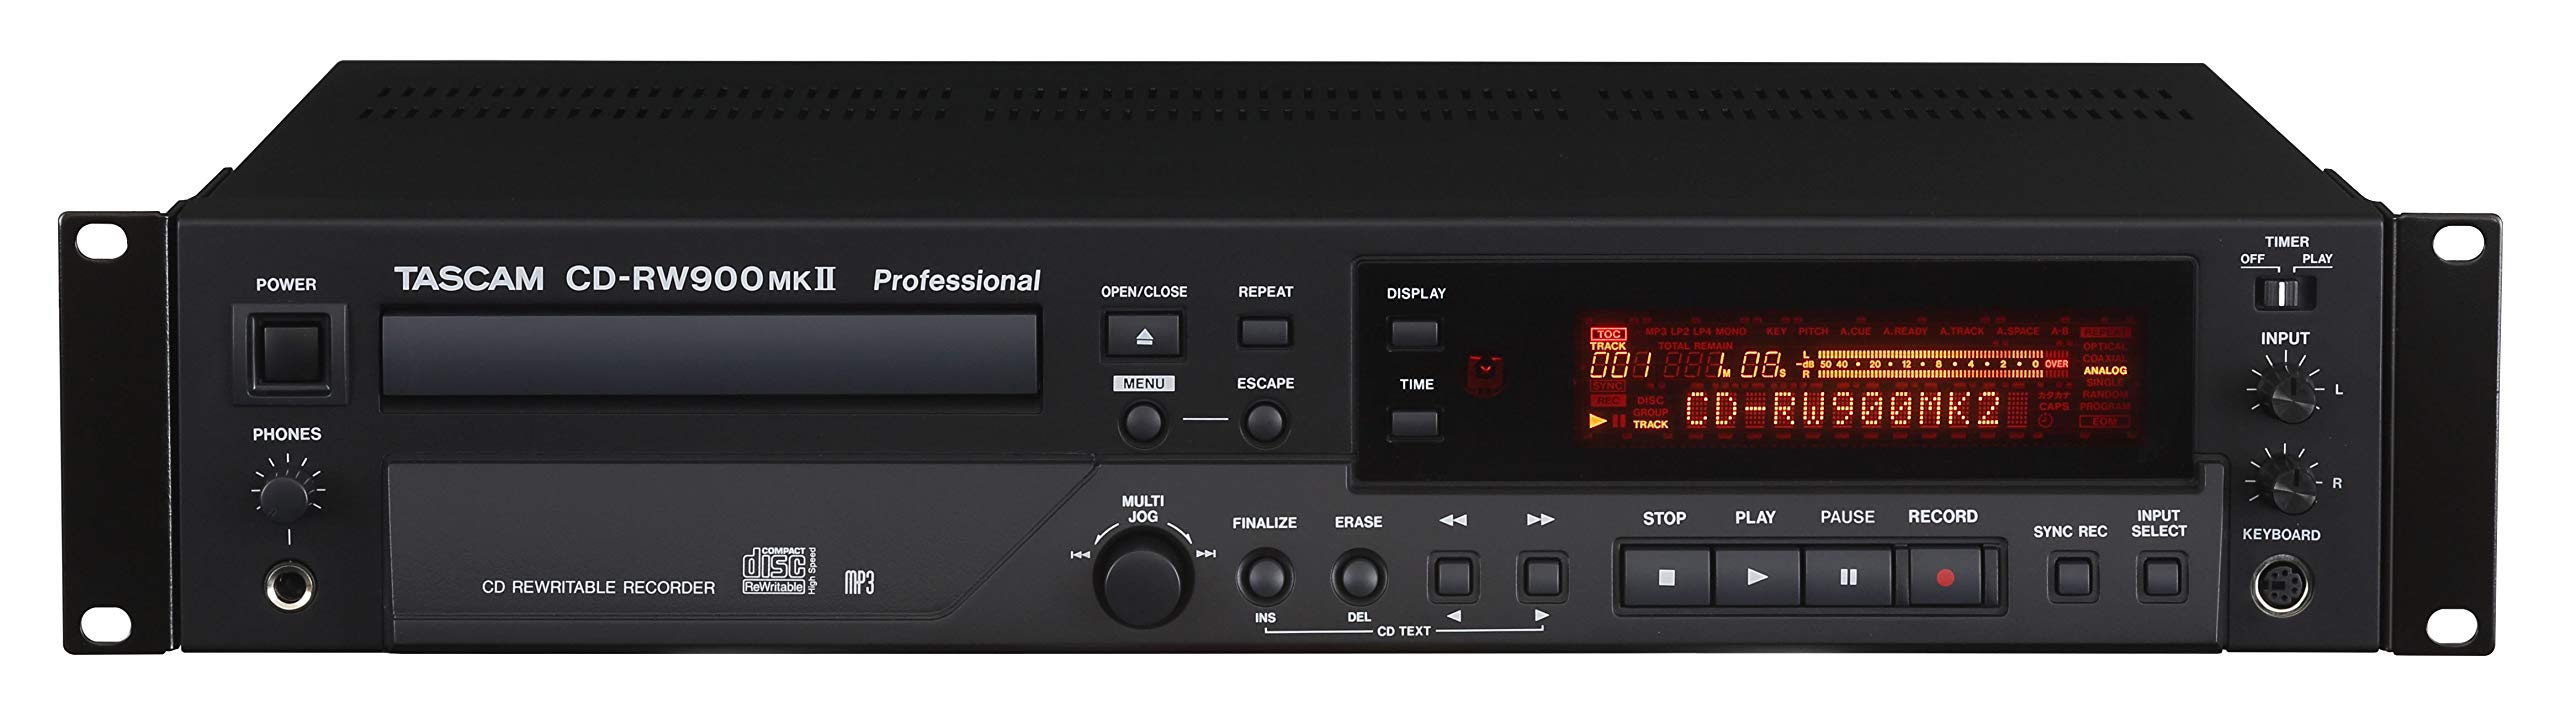 Tascam CD-RW900MKII Professional Rackmount CD Recorder/Player